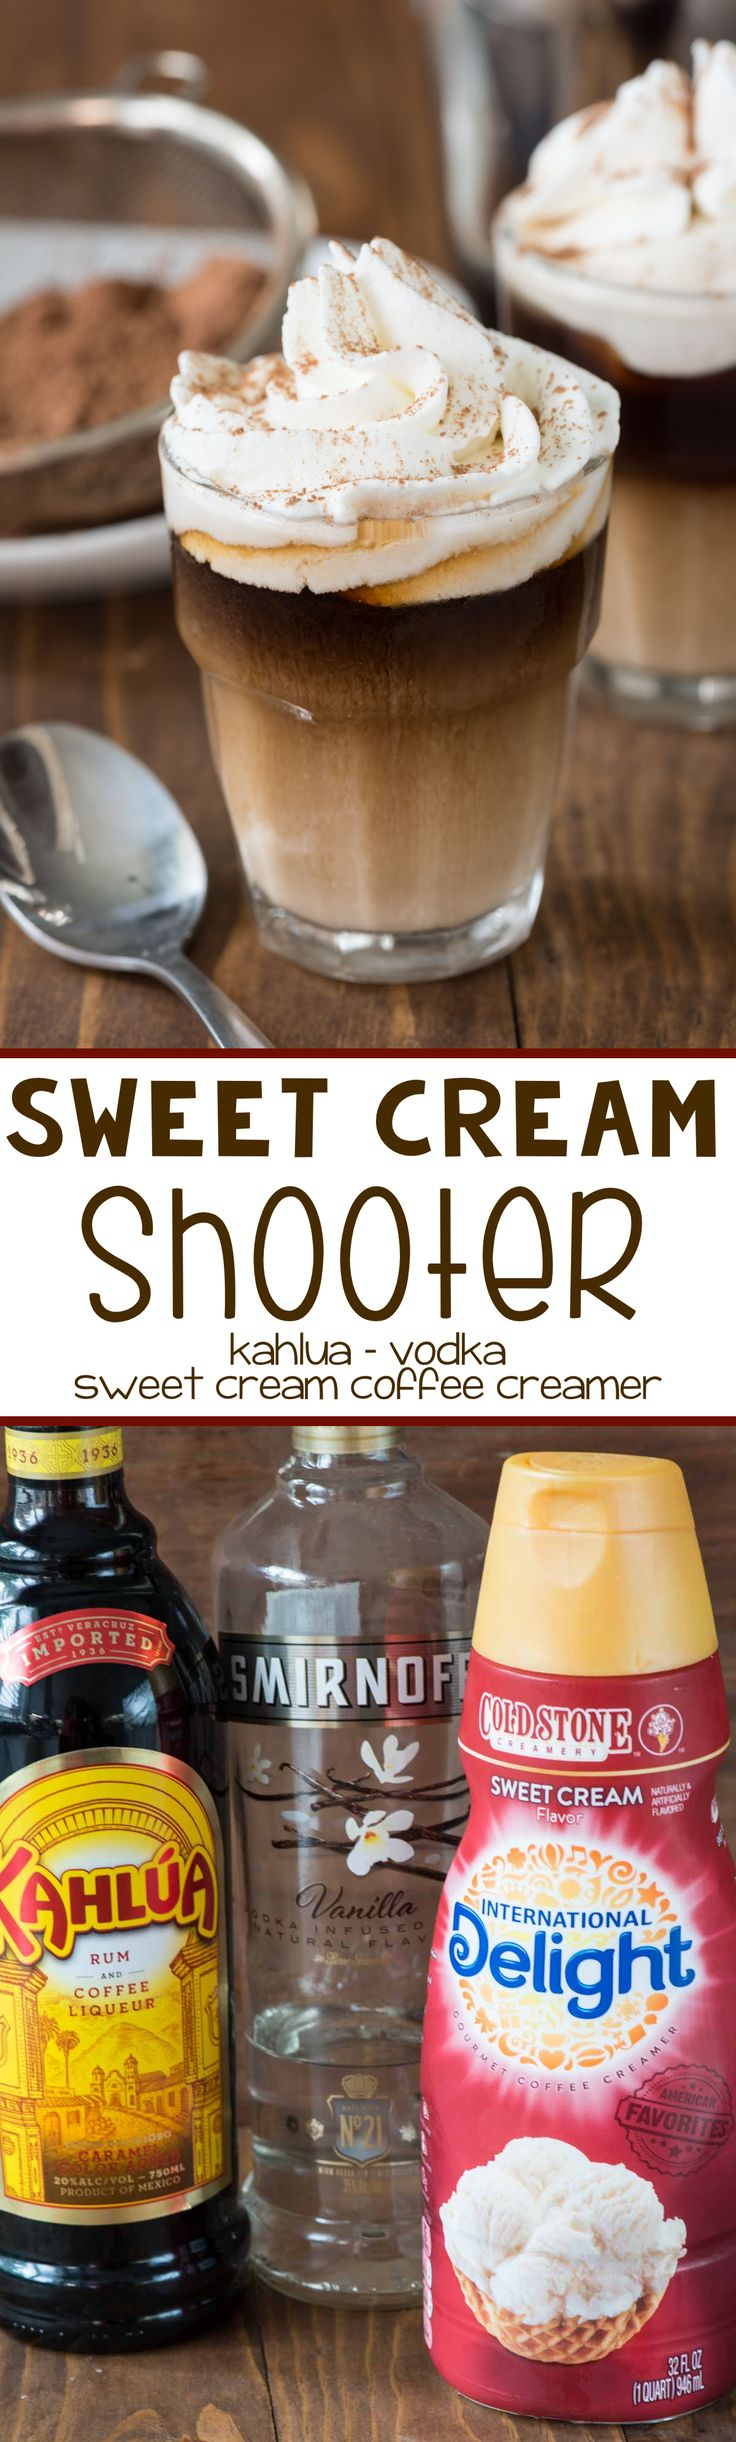 Sweet Cream Shooter - this is the perfect after dinner drink recipe! Only 3 ingredients it's great for dessert!